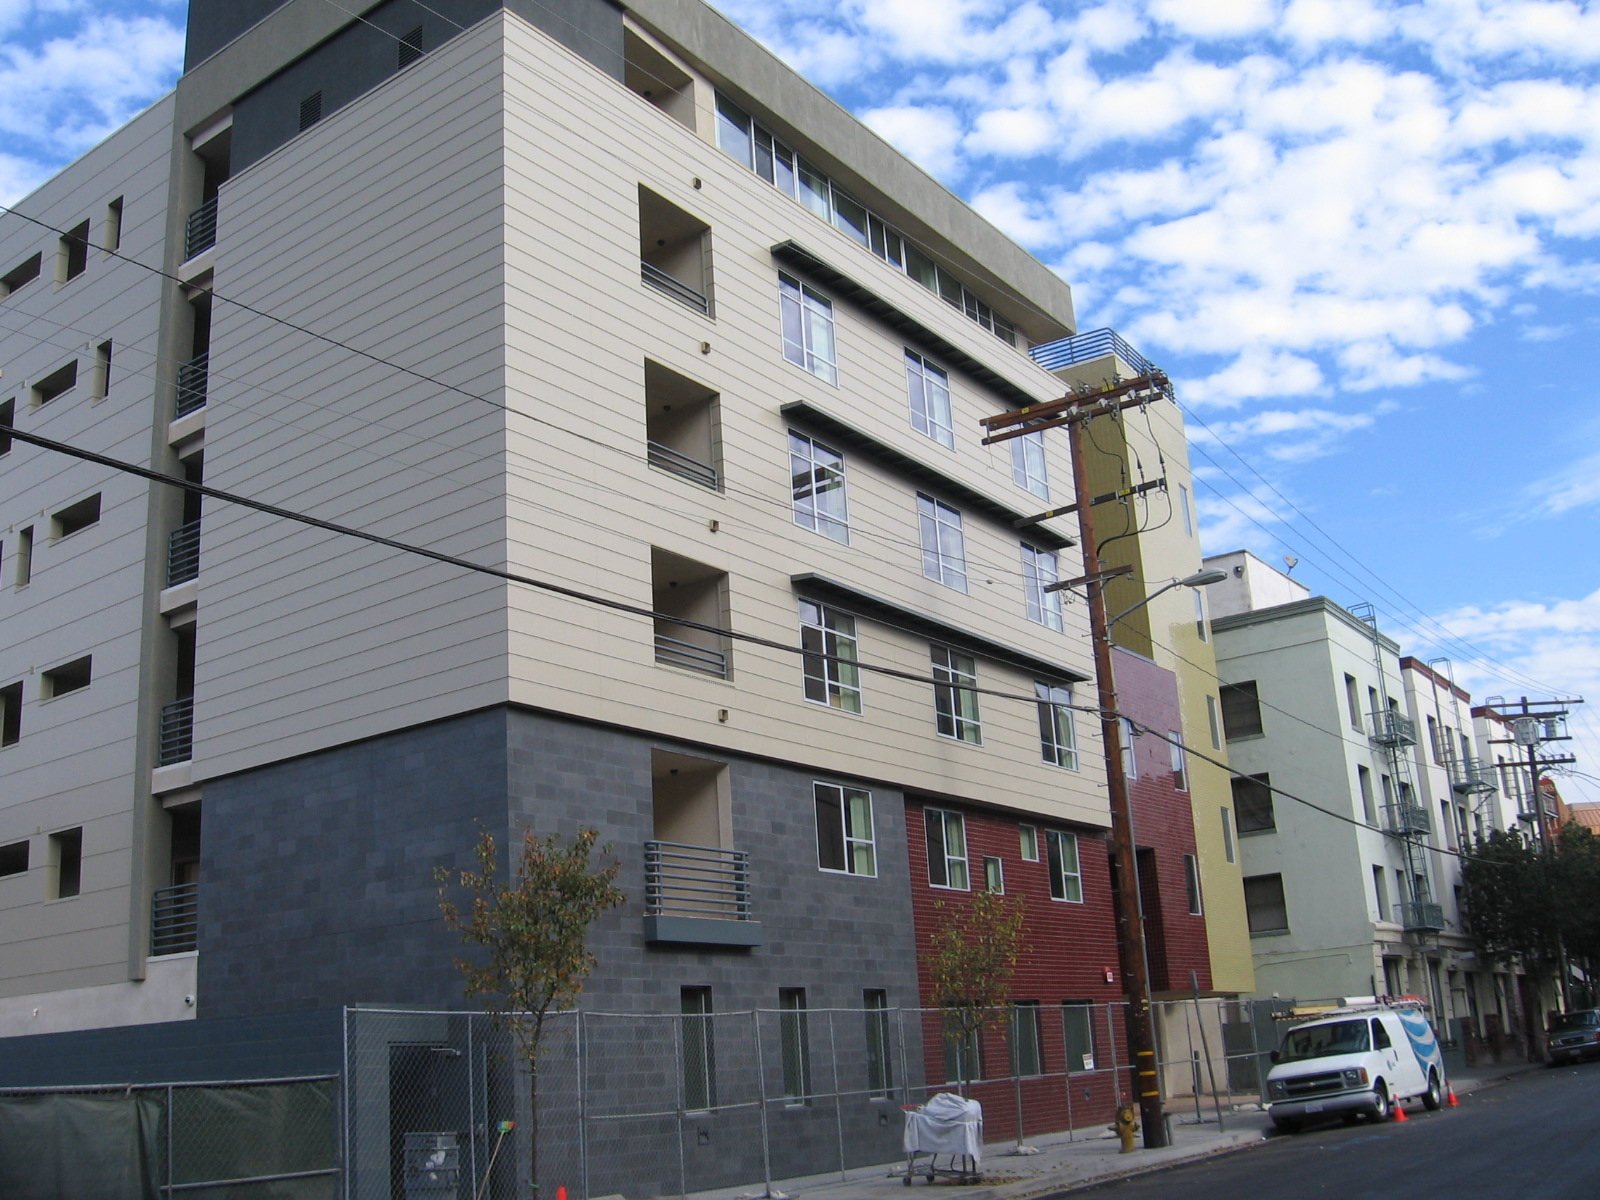 Photo of the Street view of a five story building in gold, brown and gray colors with windows